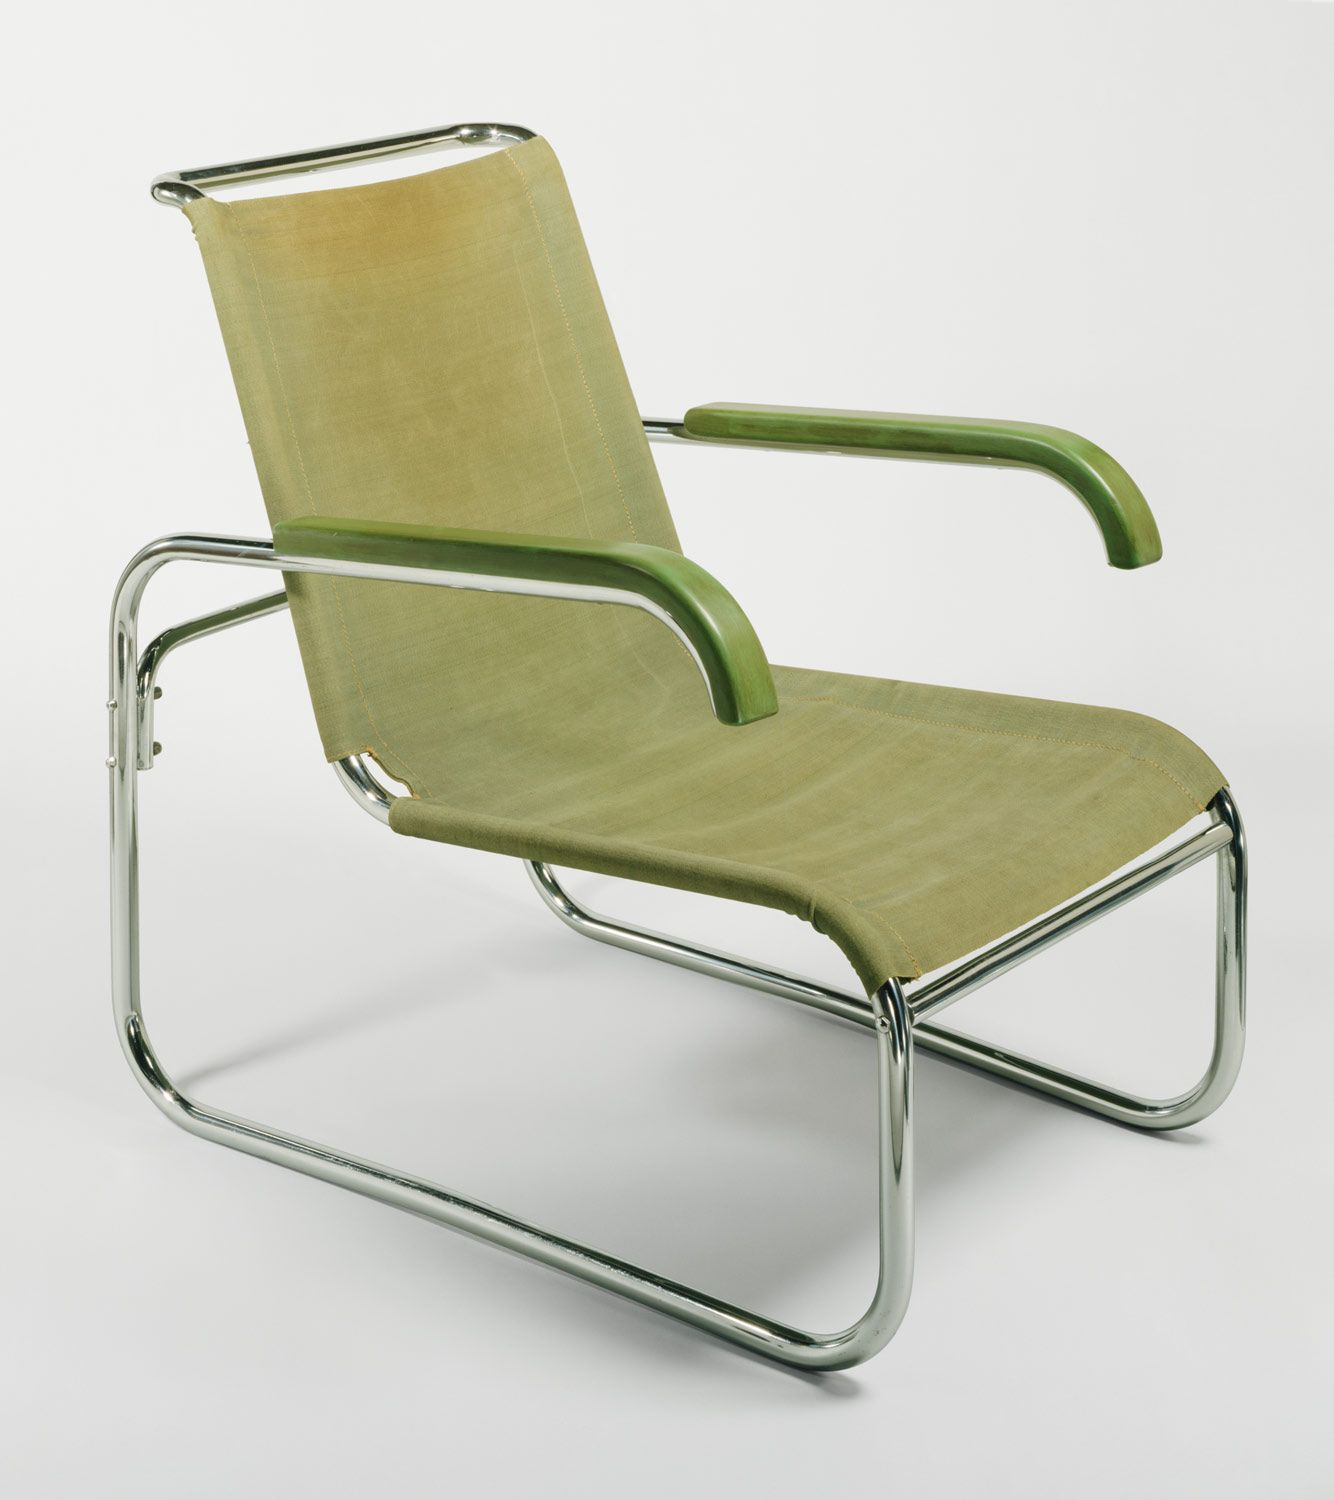 marcel breuer wassily chair history